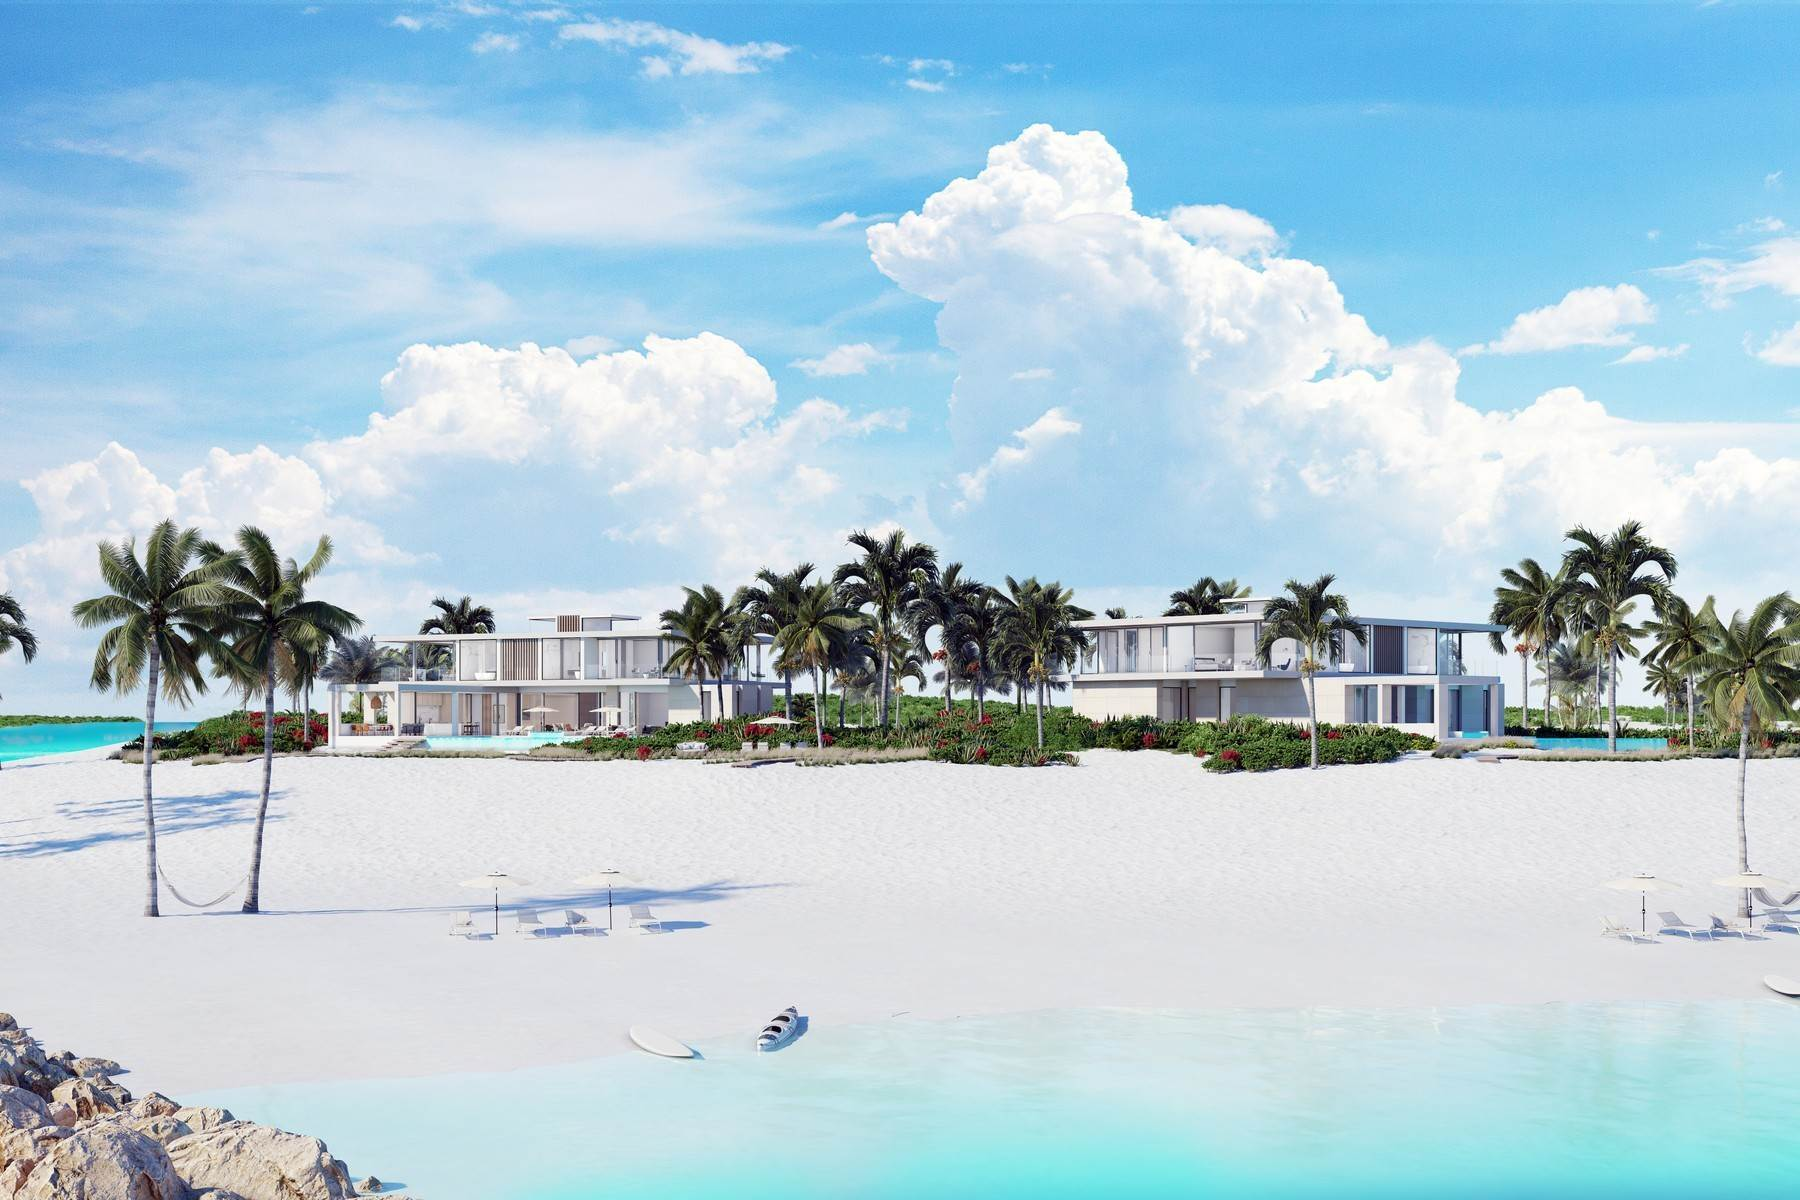 Single Family Homes por un Venta en The Peninsula at Emerald Estate - Beach House 1 Emerald Point Beachfront Leeward, Providenciales TKCA 1ZZ Islas Turcas y Caicos